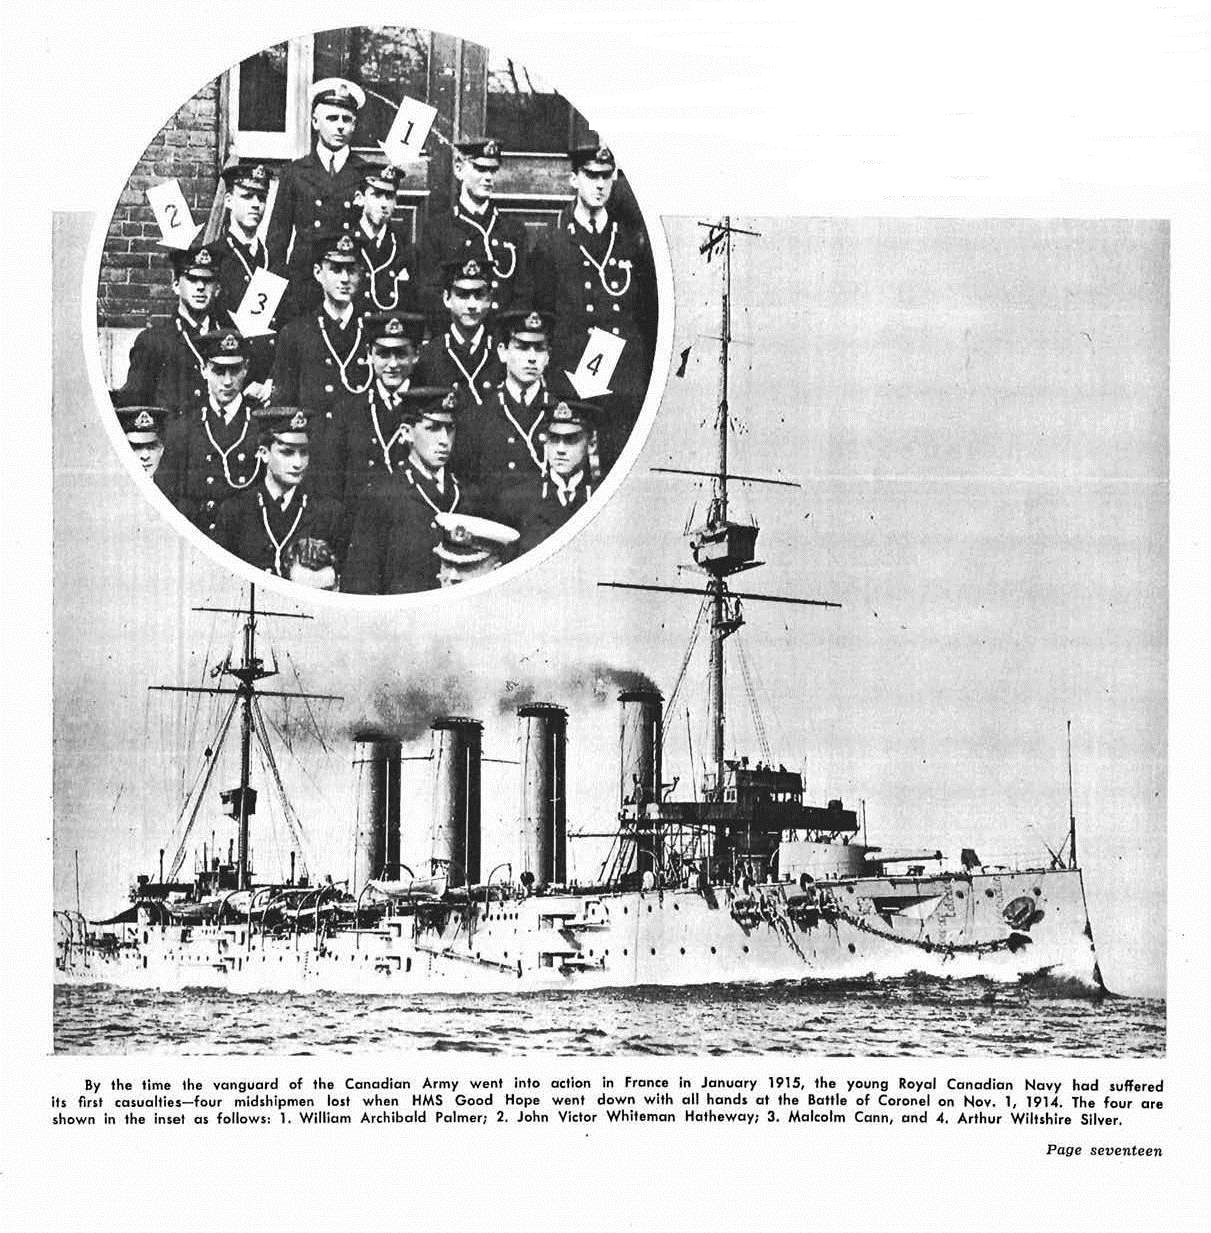 Newspaper Clipping – This display of images appeared at page 17 in the November 1964 issue of The Crowsnest, the Royal Canadian Navy's magazine.  (Submitted by Navy League Cadet Corps CHAMBLY, Barrie, Ontario.)